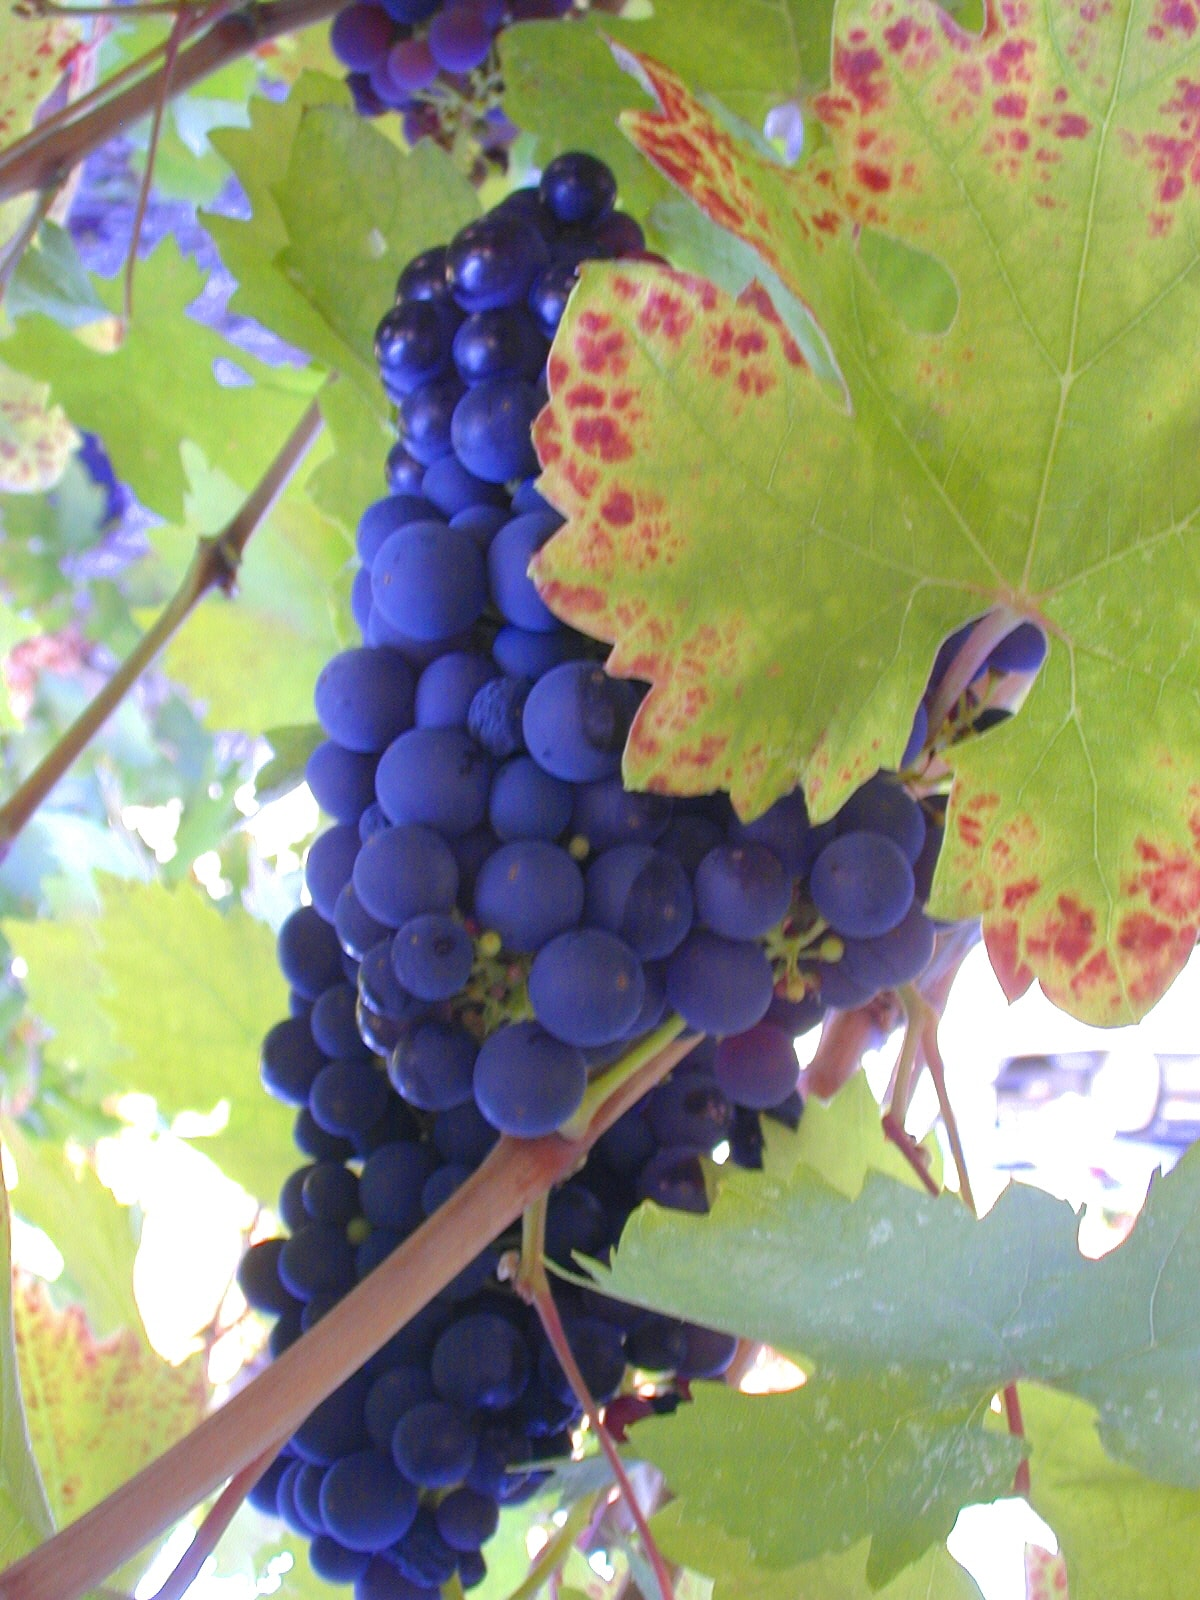 A shot from last year ...  grapes from one of the vineyards surrounding our home